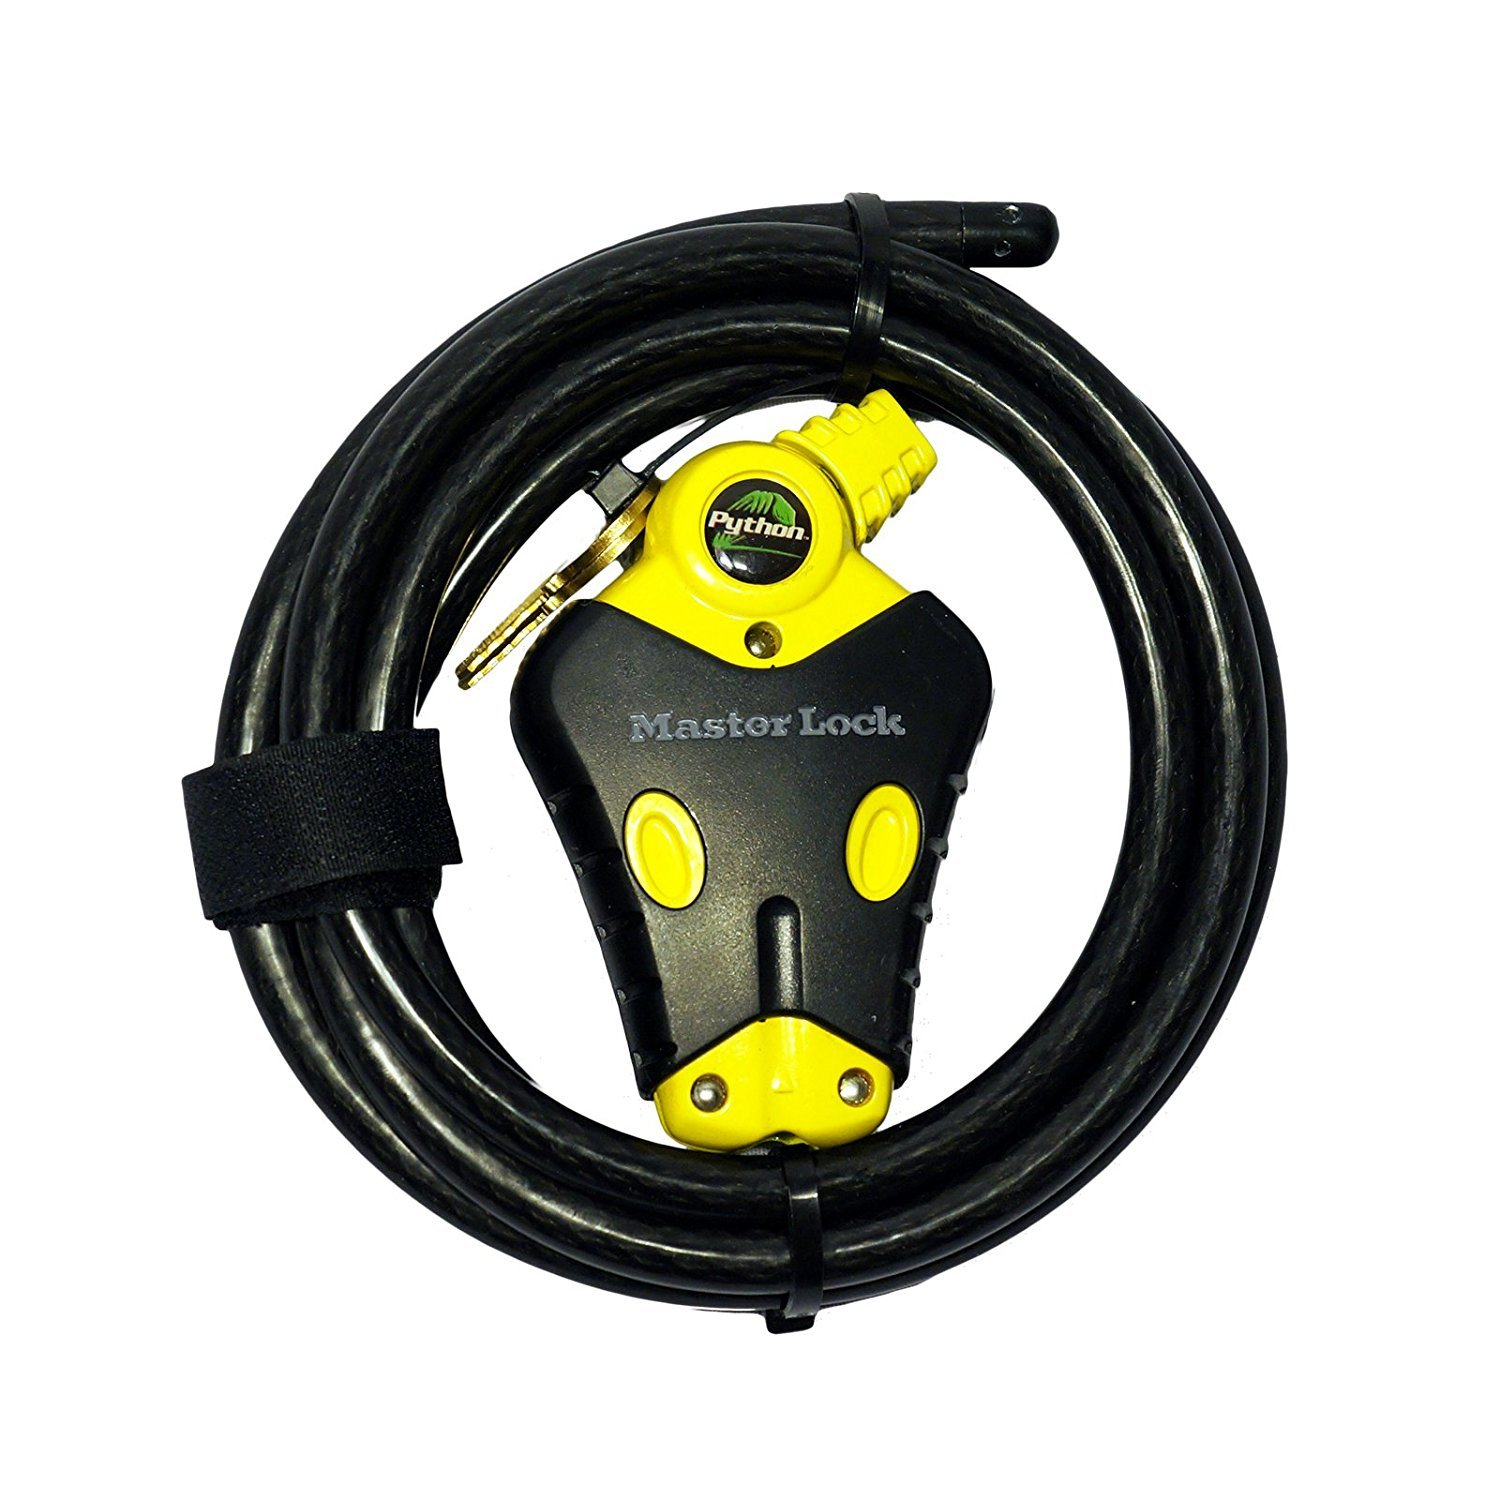 Master Lock 1 Python Adjustable Cable Lock, 8413KACBL-6